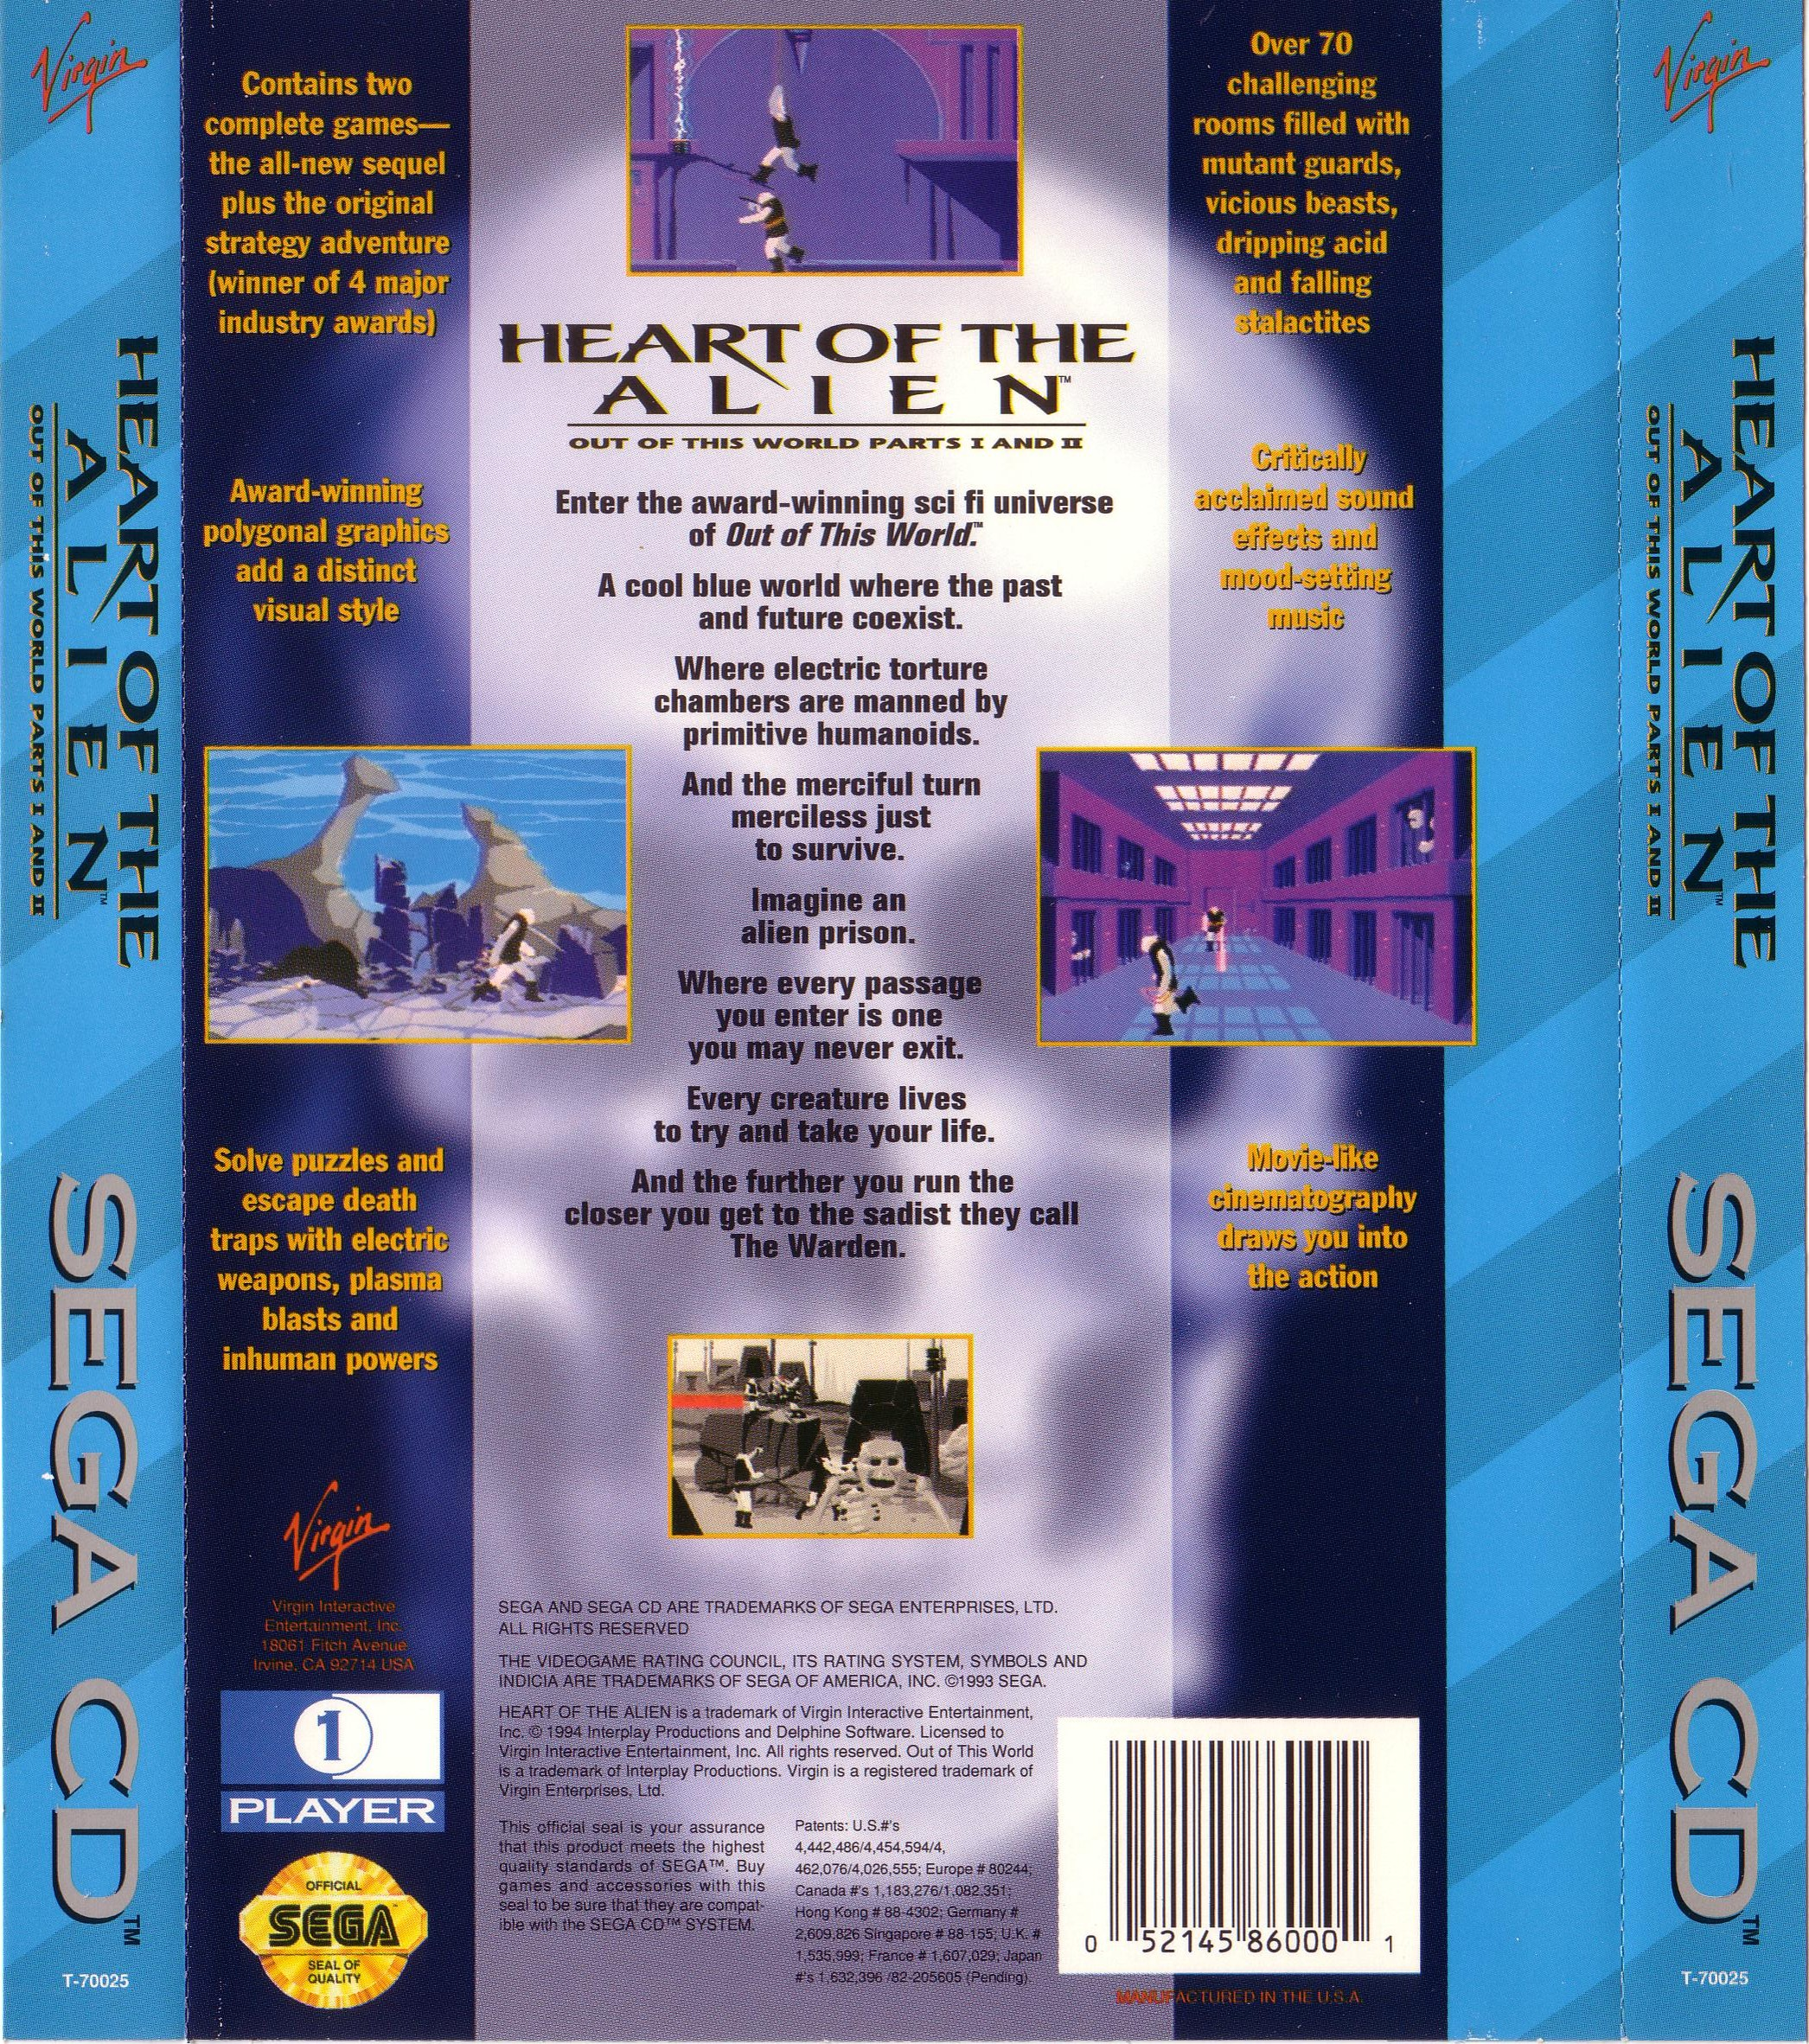 Heart of the Alien - Out of This World Part I & II (U) Back Cover